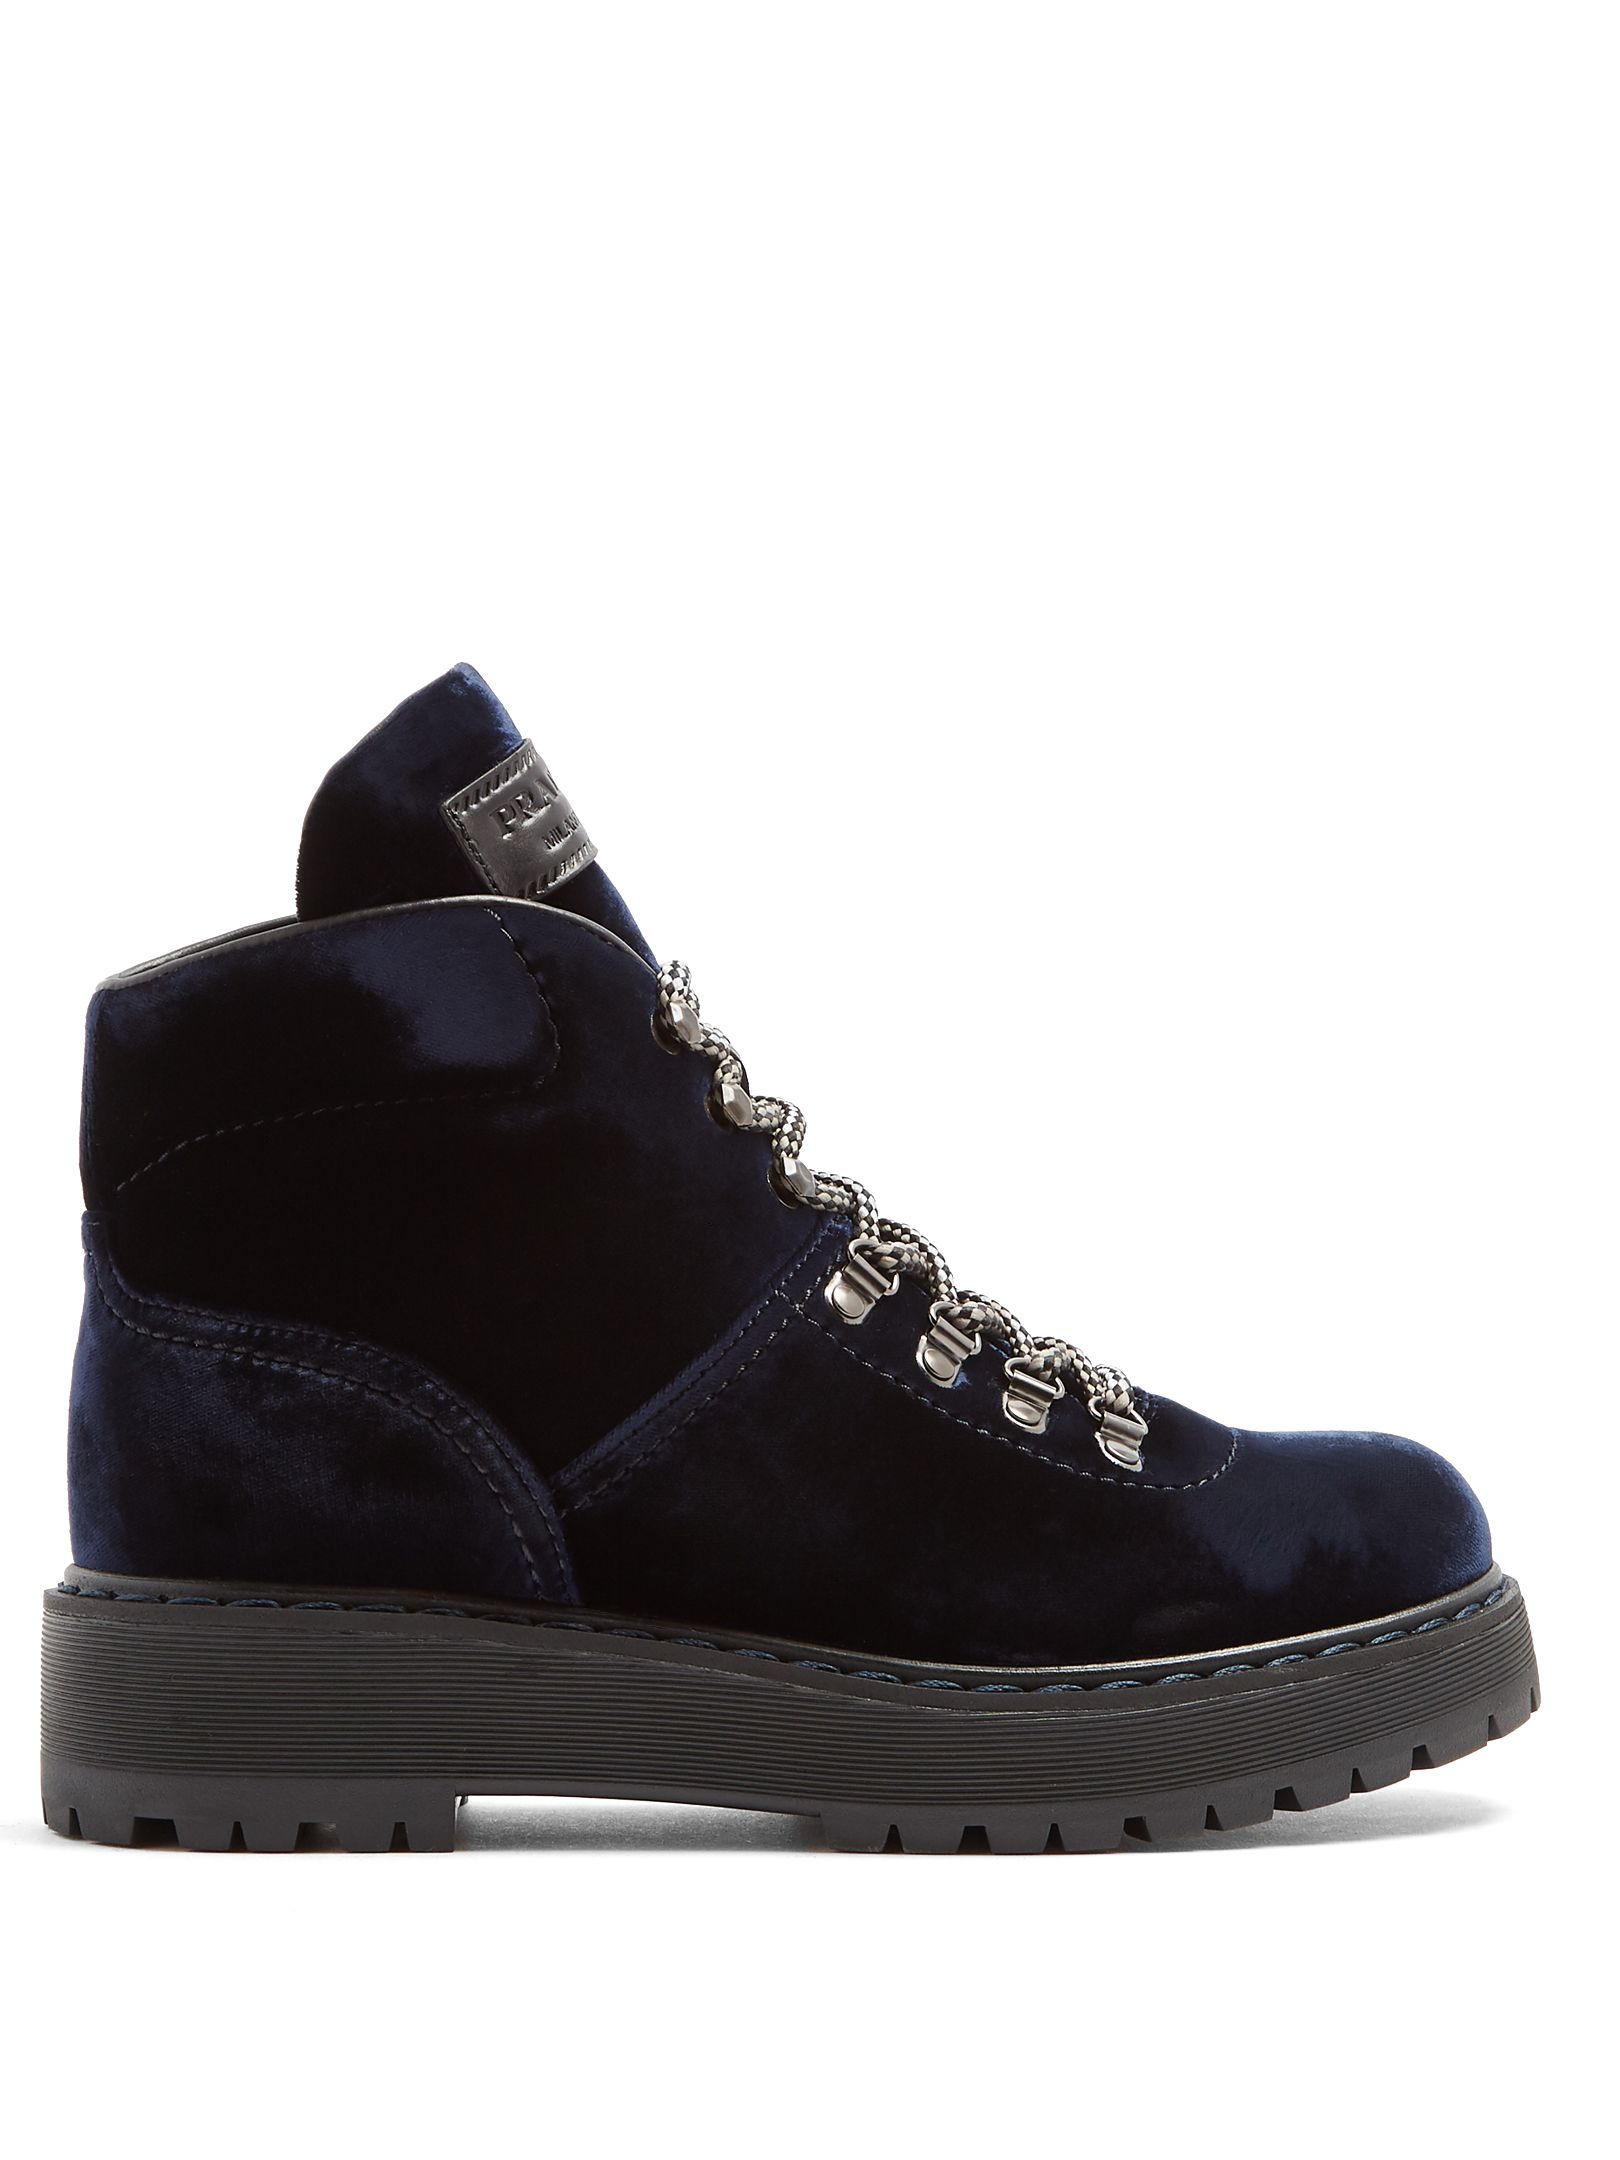 9a37625d76ba Click here to buy Prada Lace-up velvet après-ski boots at MATCHESFASHION.